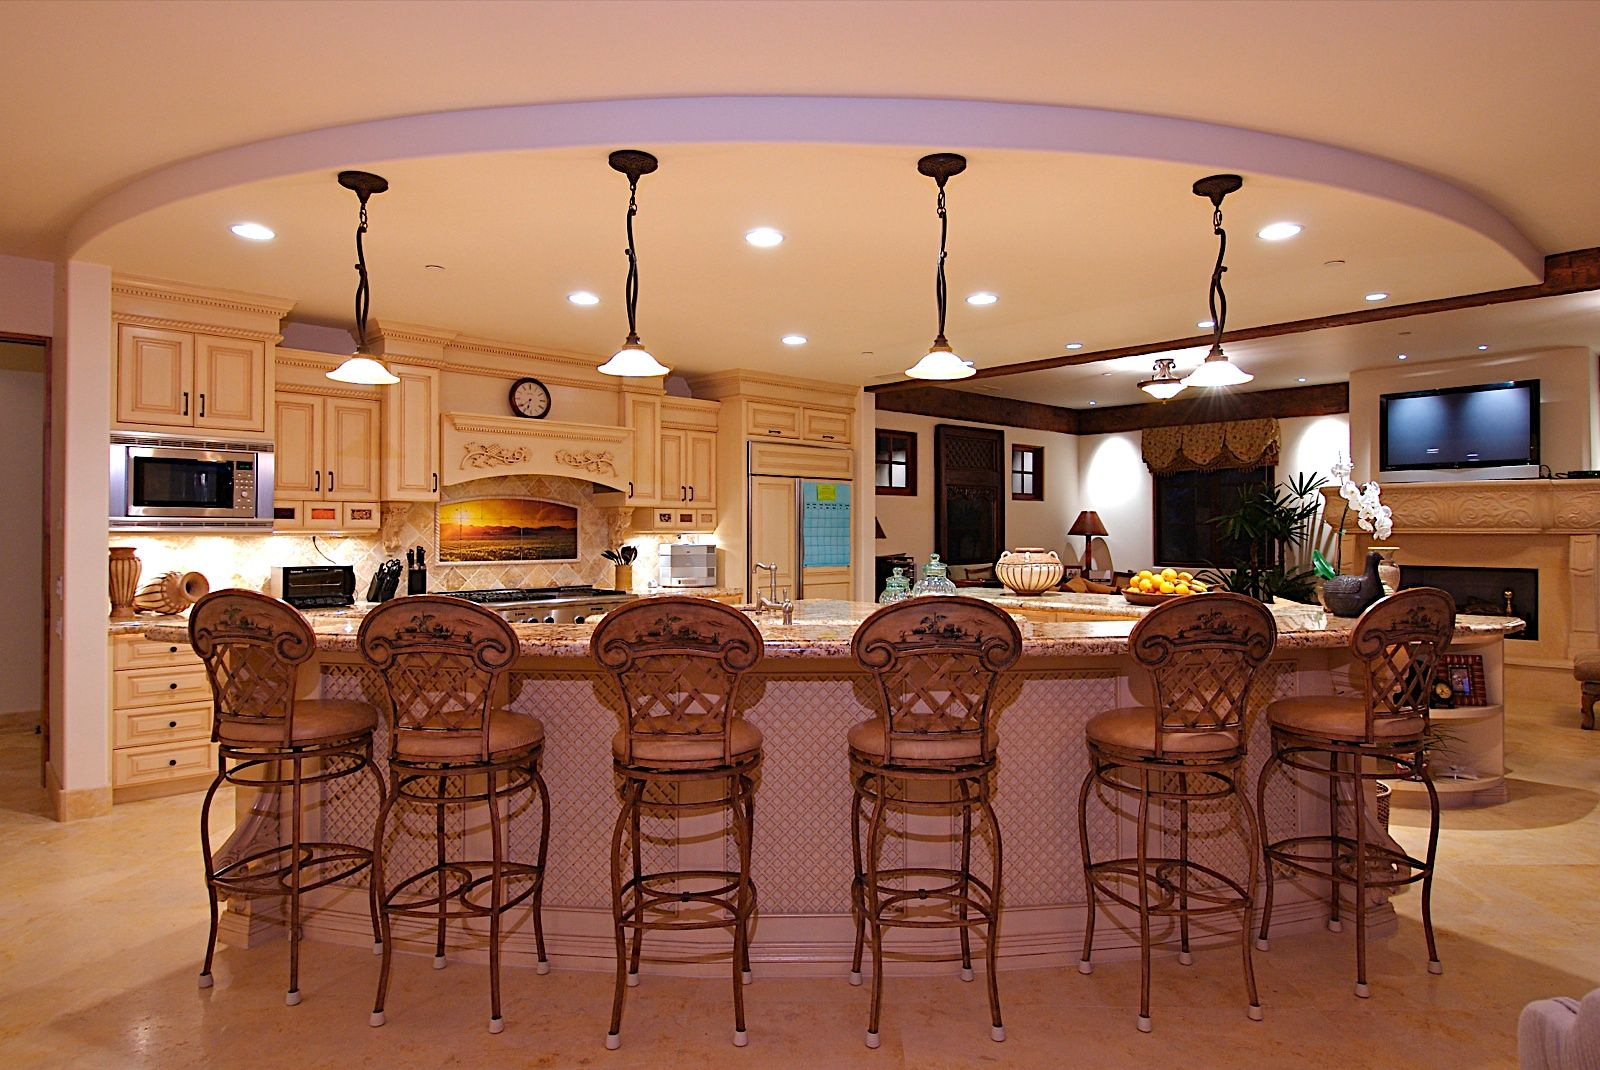 5 Newest Kitchens' Decorations Ideas For 2017  Island Design Mesmerizing Lighting Design Kitchen 2018